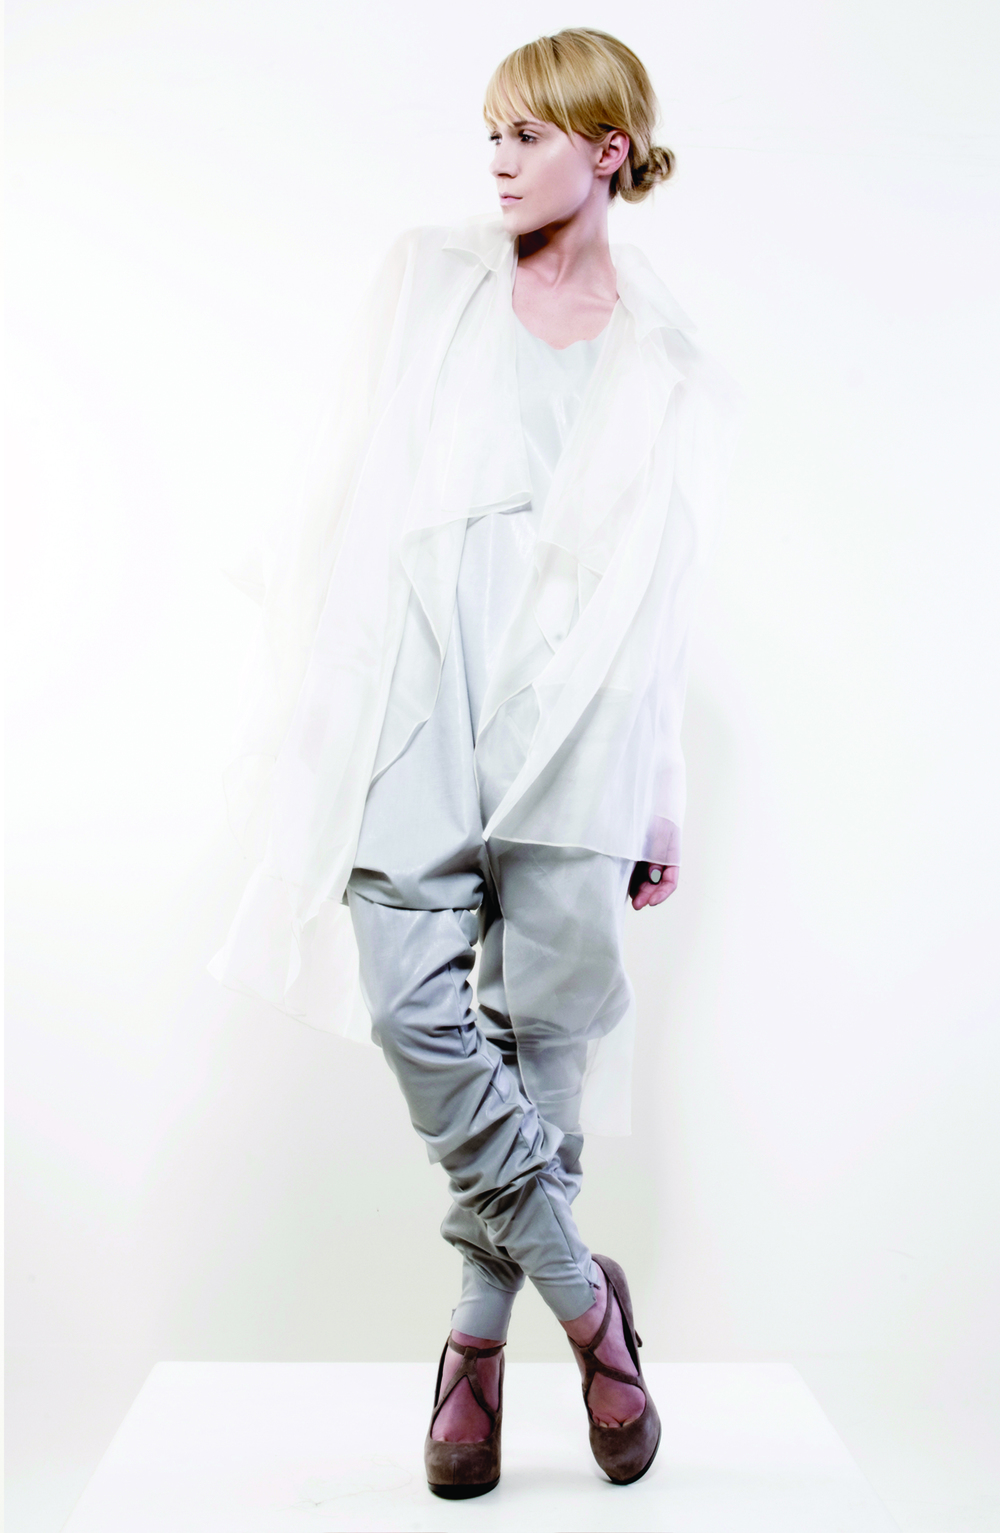 outfit-4a-Gravity-and-Levitation-Spring-Summer-Collection-Isabel-Wong-Sheer-White-Silk-organza-jacket.jpg